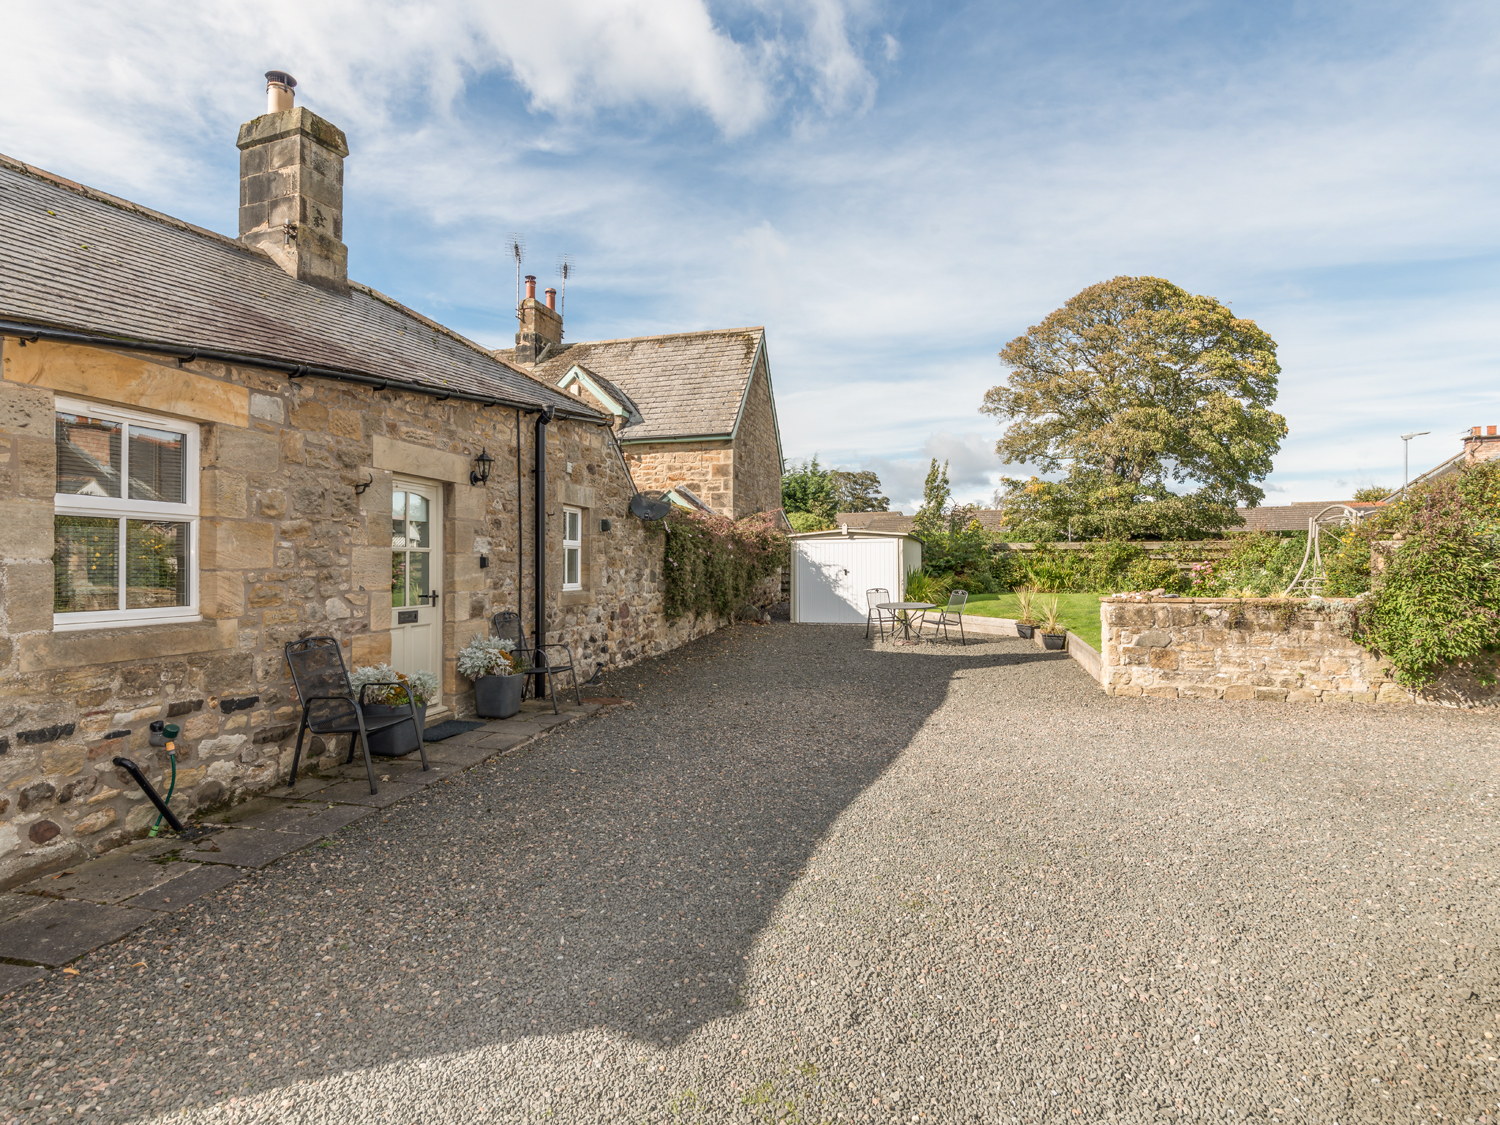 1 bedroom Cottage for rent in Alnwick